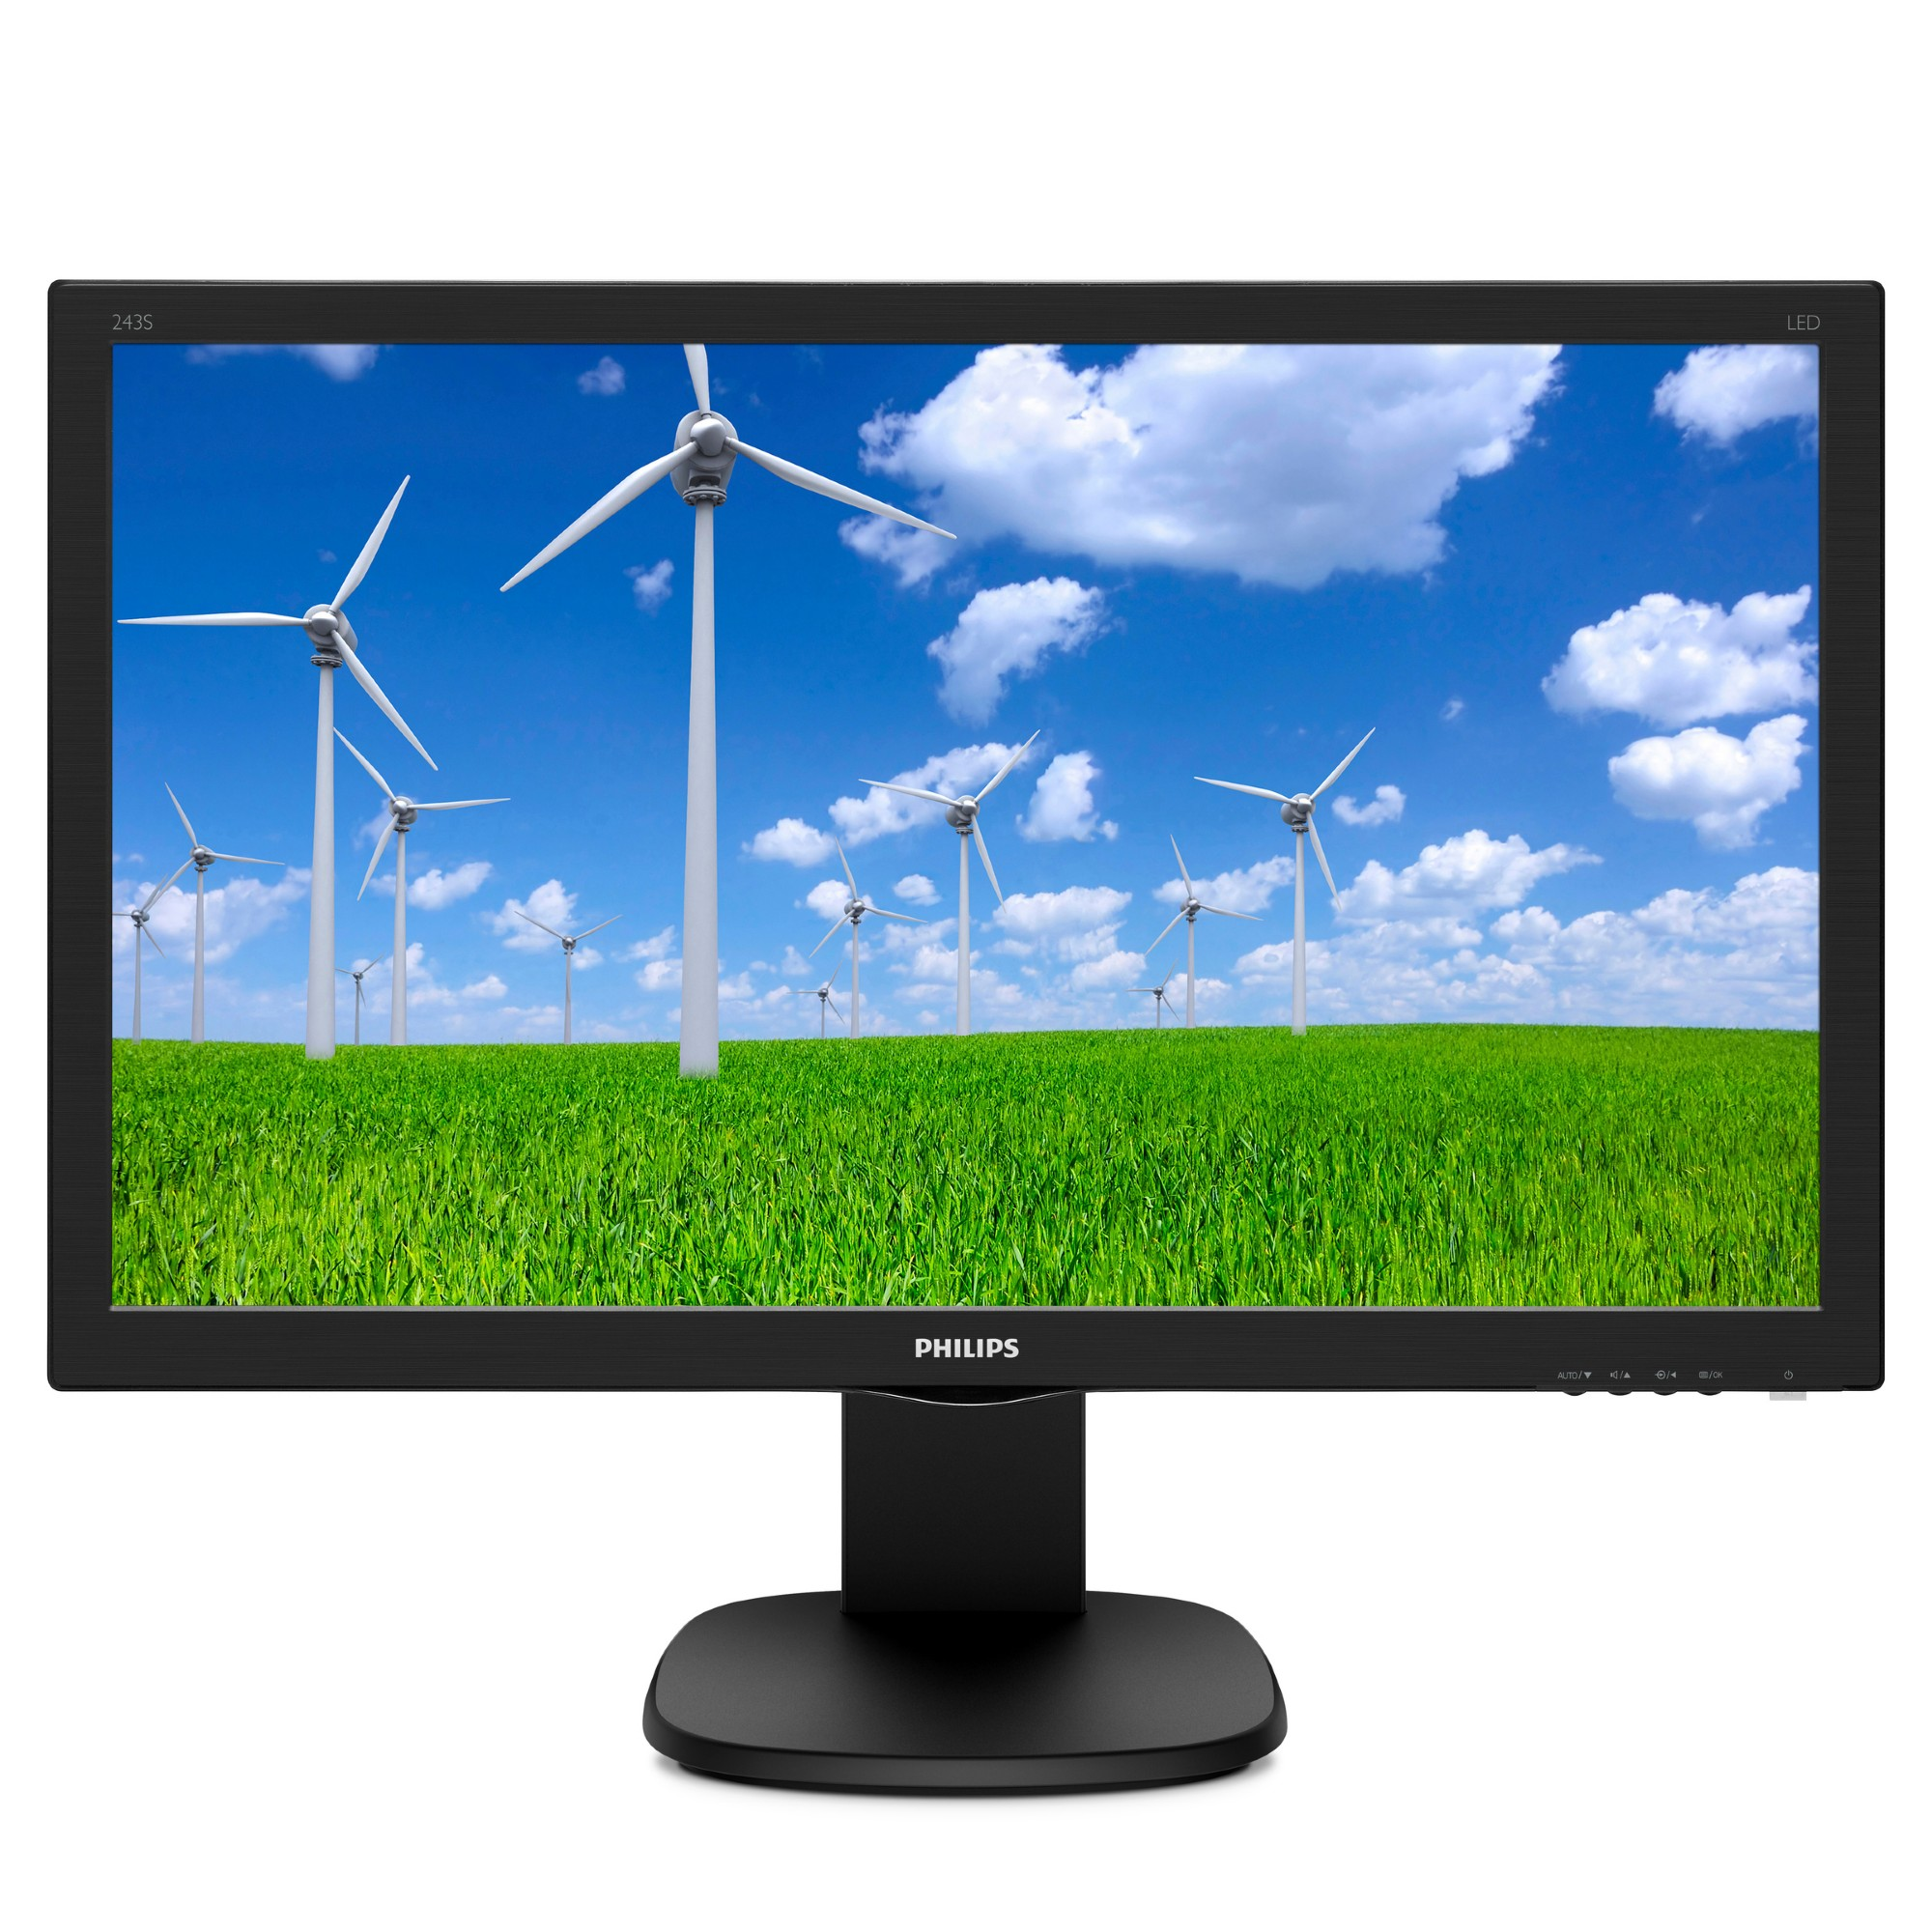 PHILIPS S LINE LCD MONITOR 243S5LJMB/00